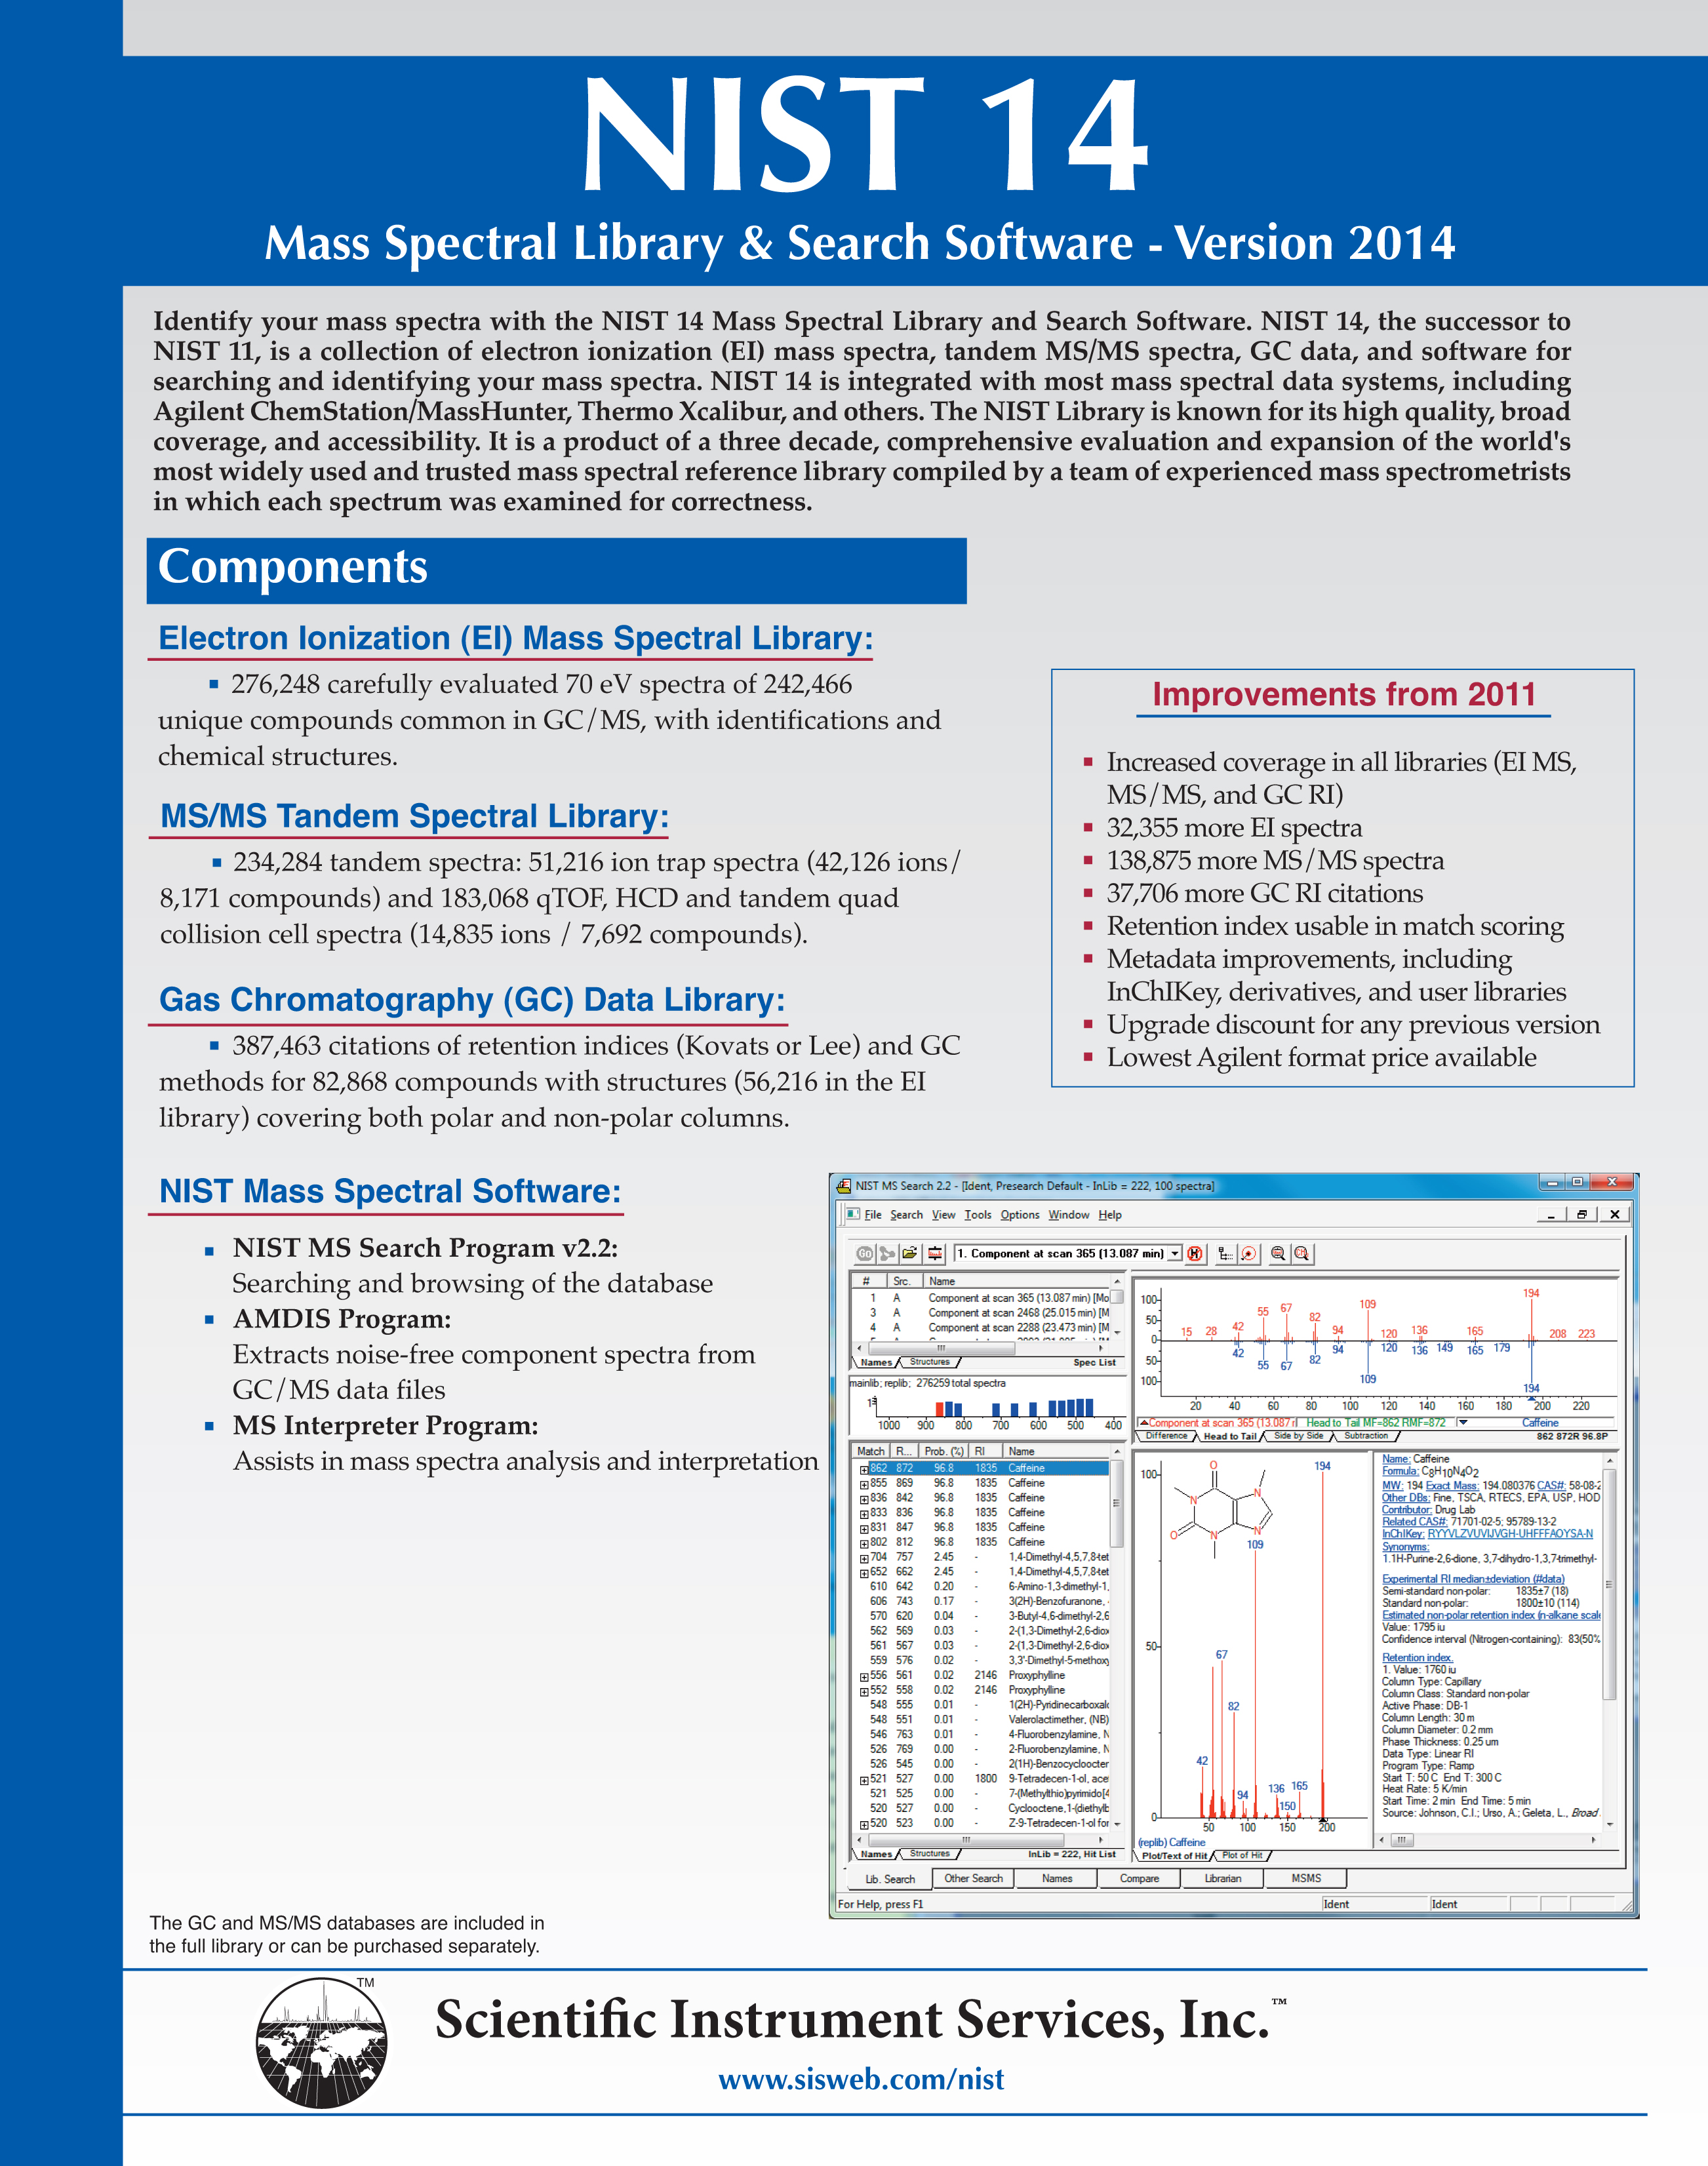 NIST 14 Mass Spectral Library, NIST 2014 Database, Agilent ... - photo#33